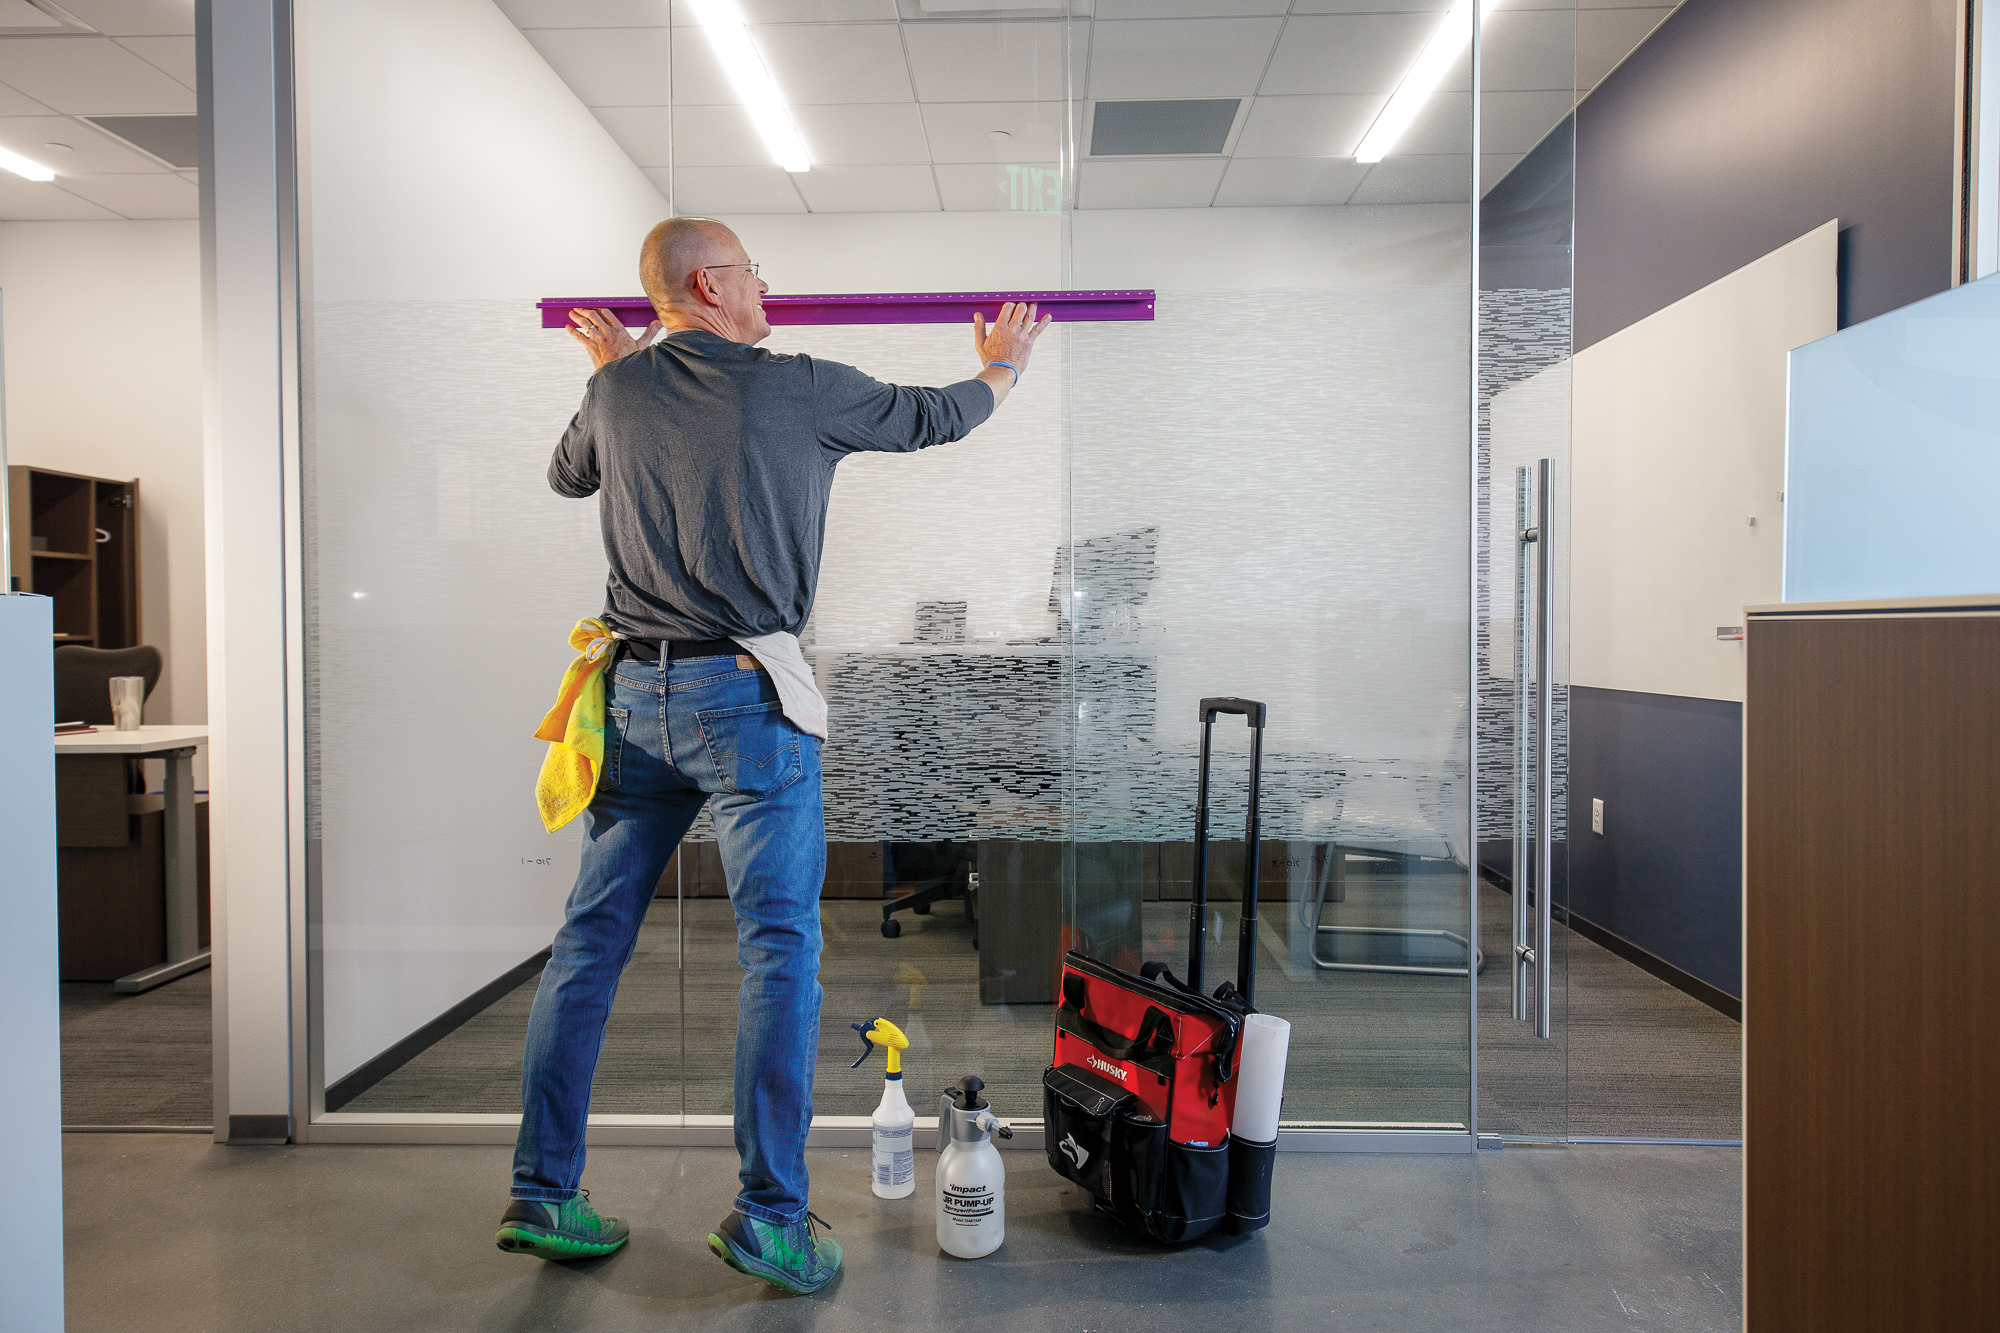 Installation_Commercial Window Film_MG_8331_small 2000 px.jpg